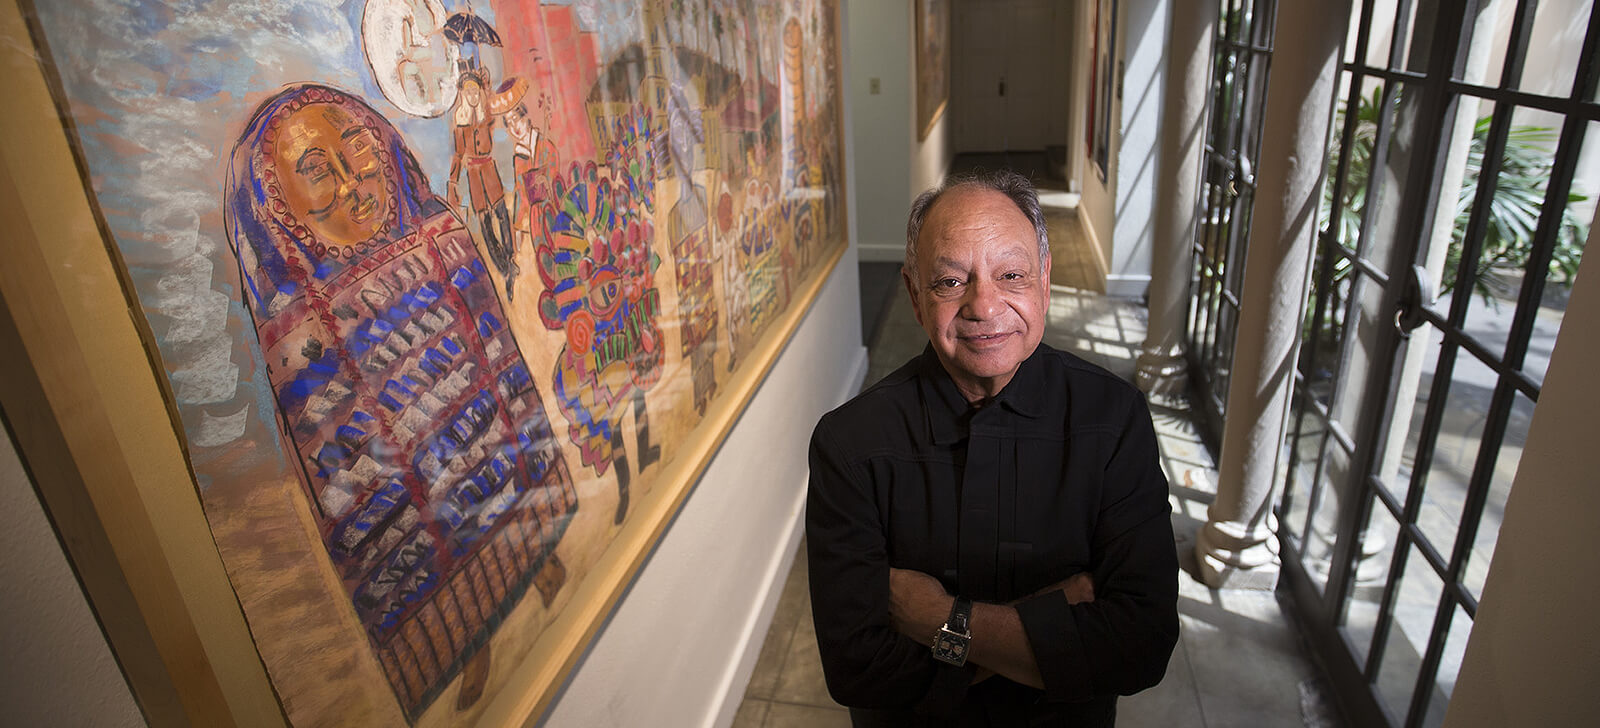 Cheech Marin's Long-Awaited Chicano Art Museum Secures City Approval and $1 Million in Annual Funding